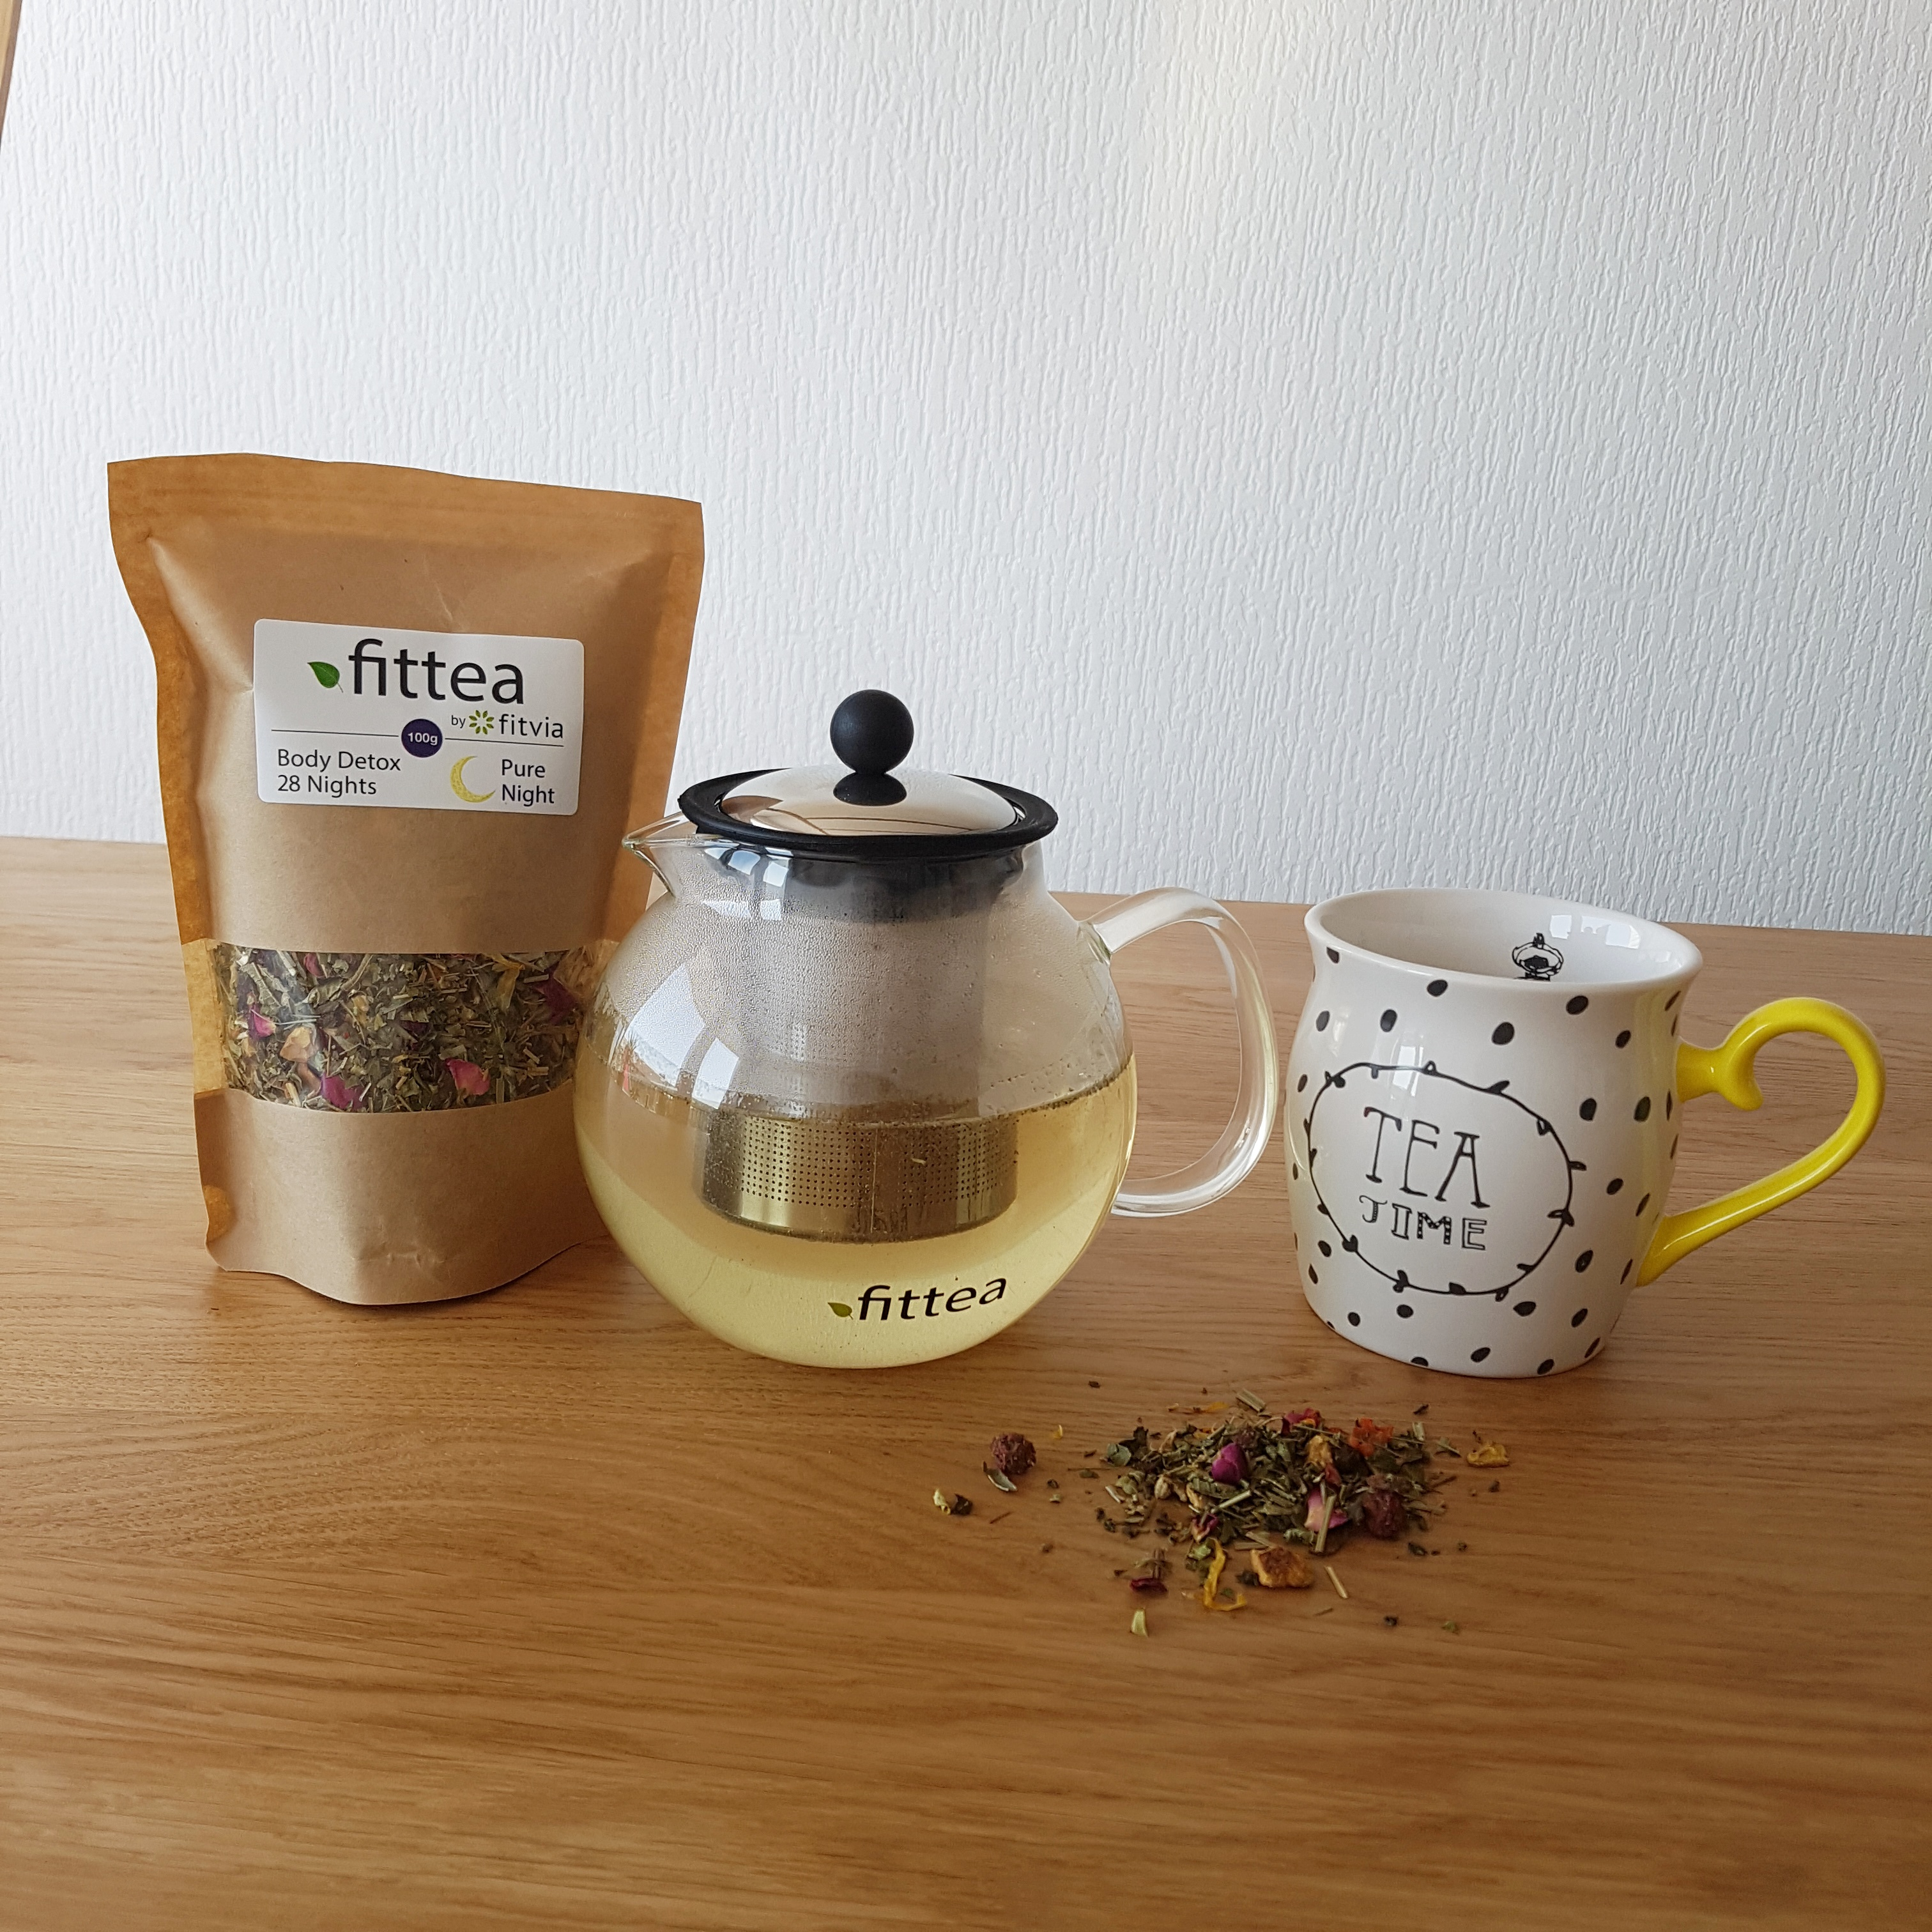 the detox fittea